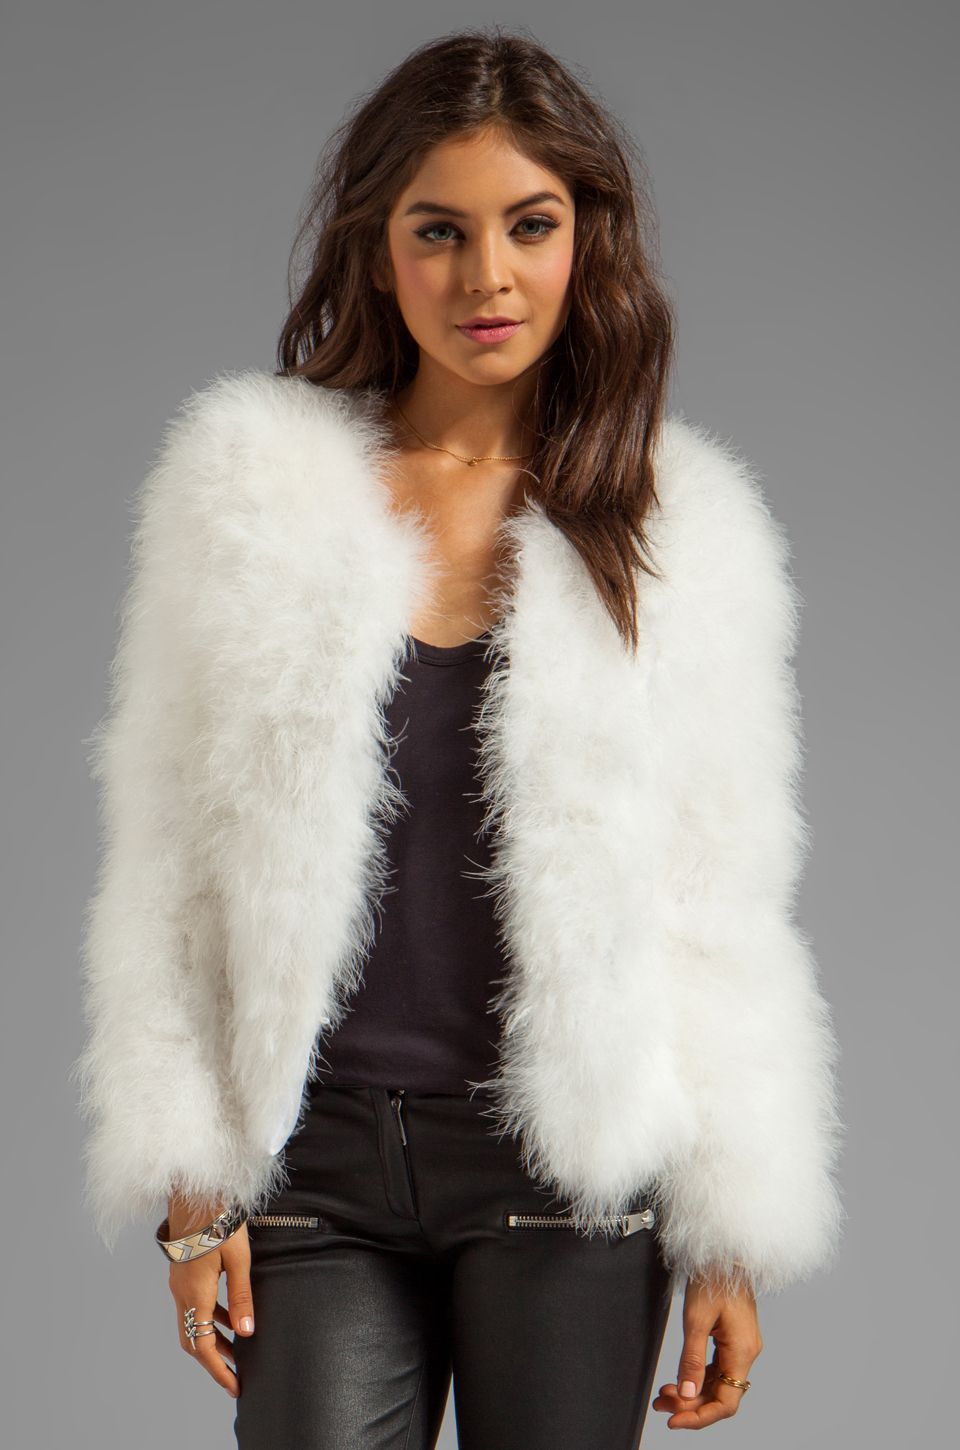 Line & Dot Marabou Faux Fur Jacket in White | Jackets | Pinterest ...